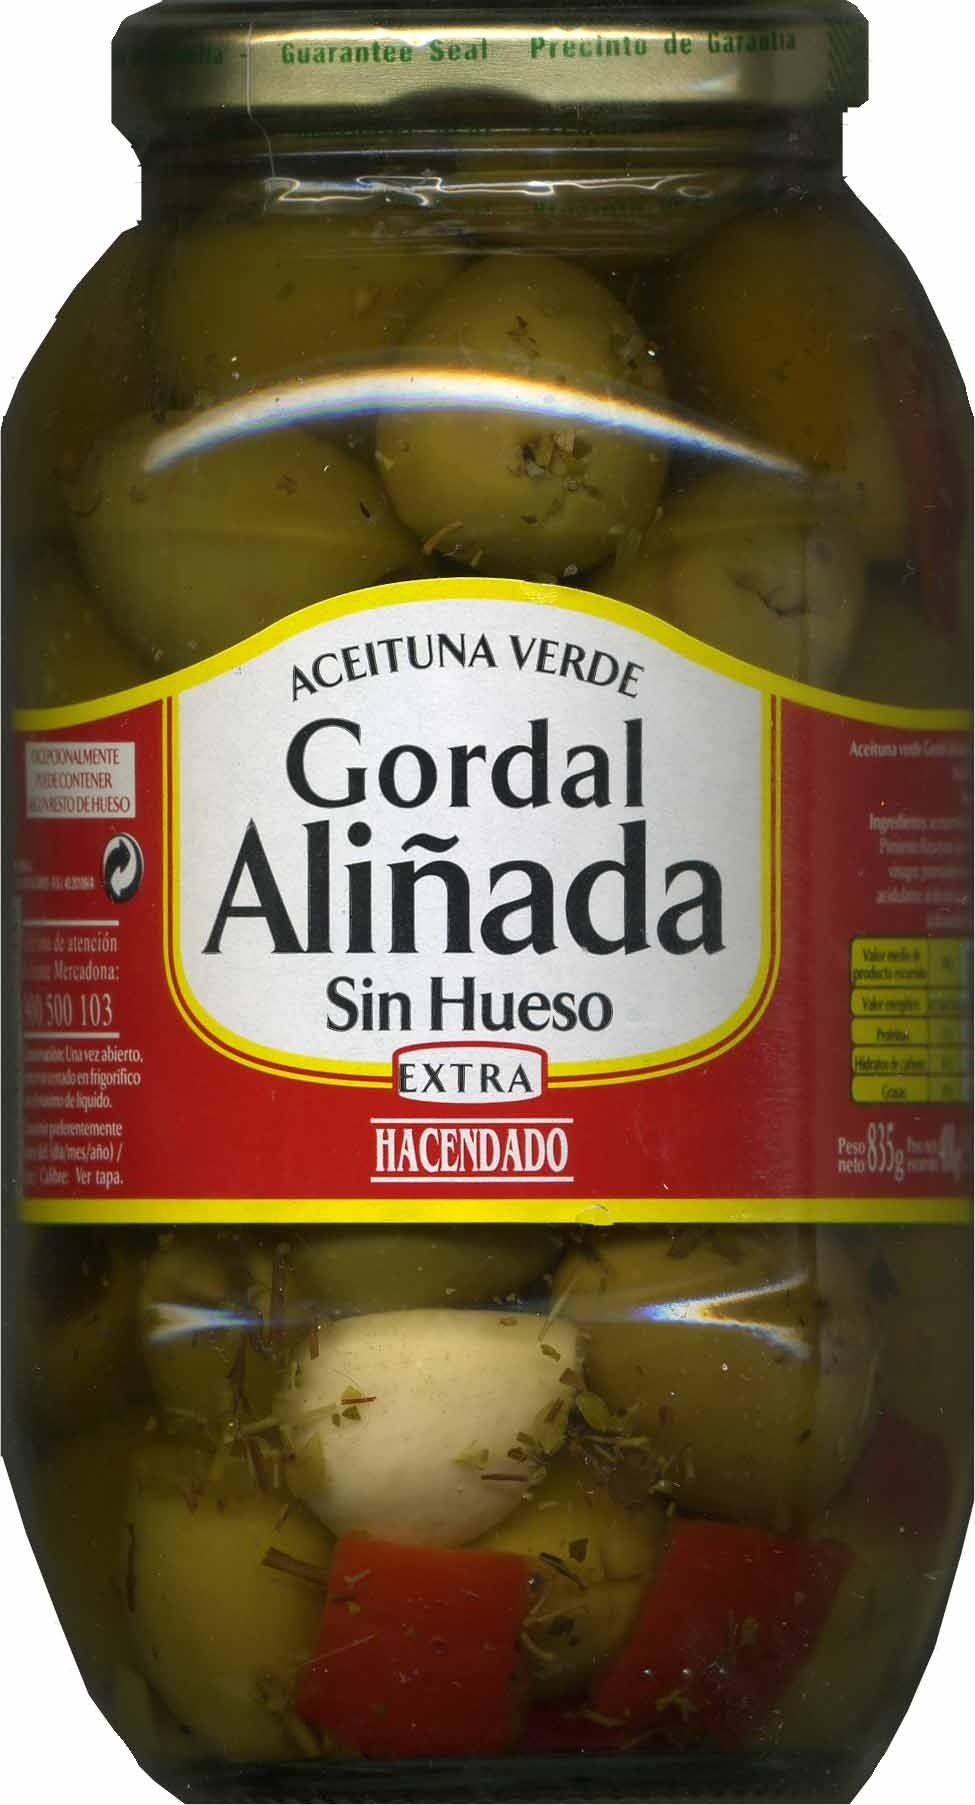 Aceitunas verdes gordal sin hueso - Producto